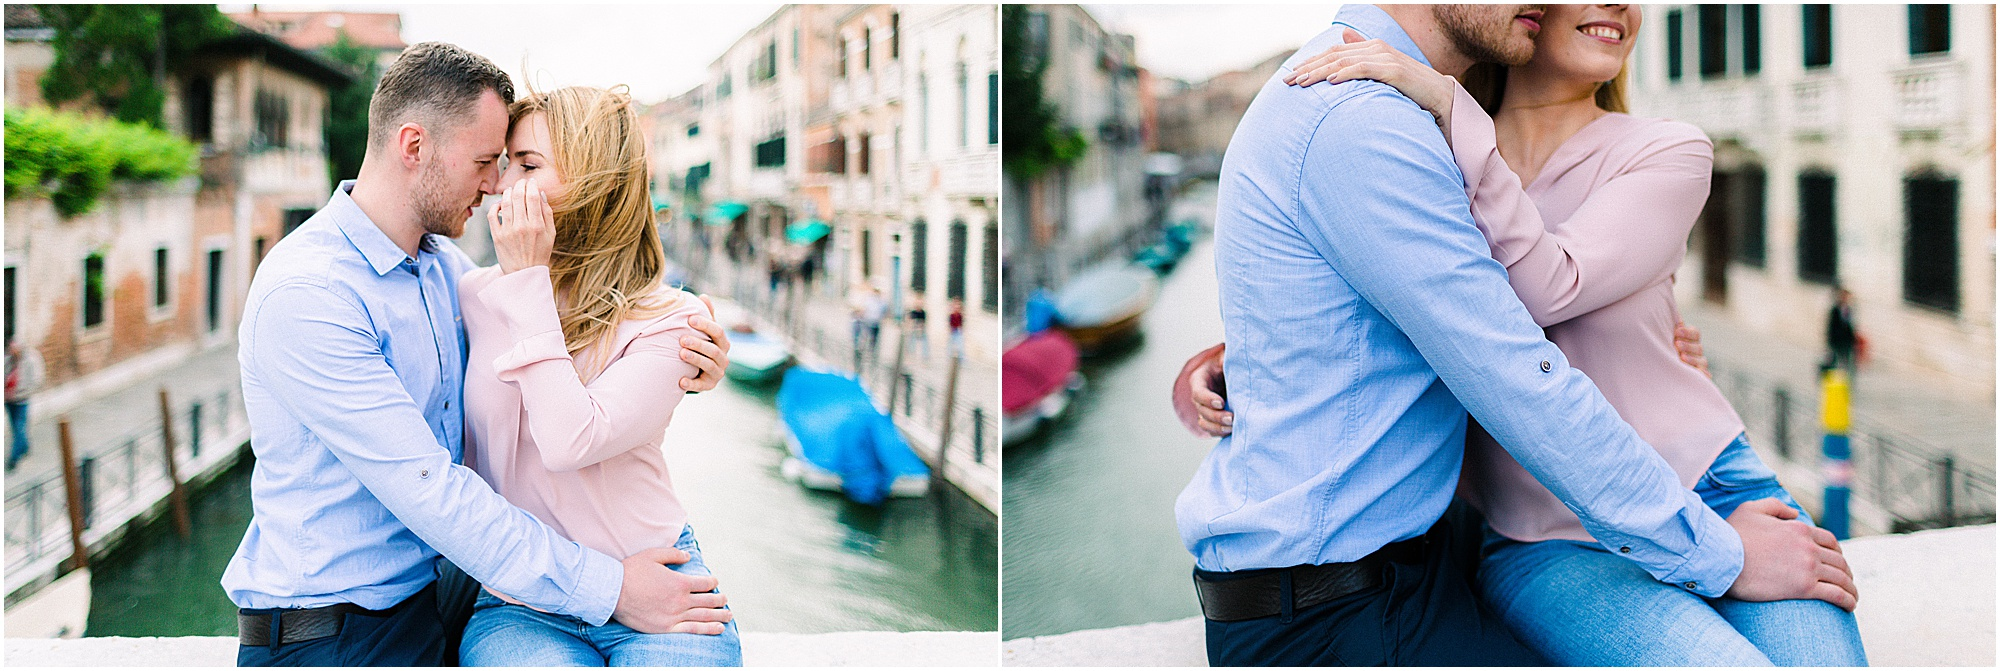 couple-lifestyle-photoshoot-in-venice-gondola-sunrise-stefano-degirmenci_0062.jpg